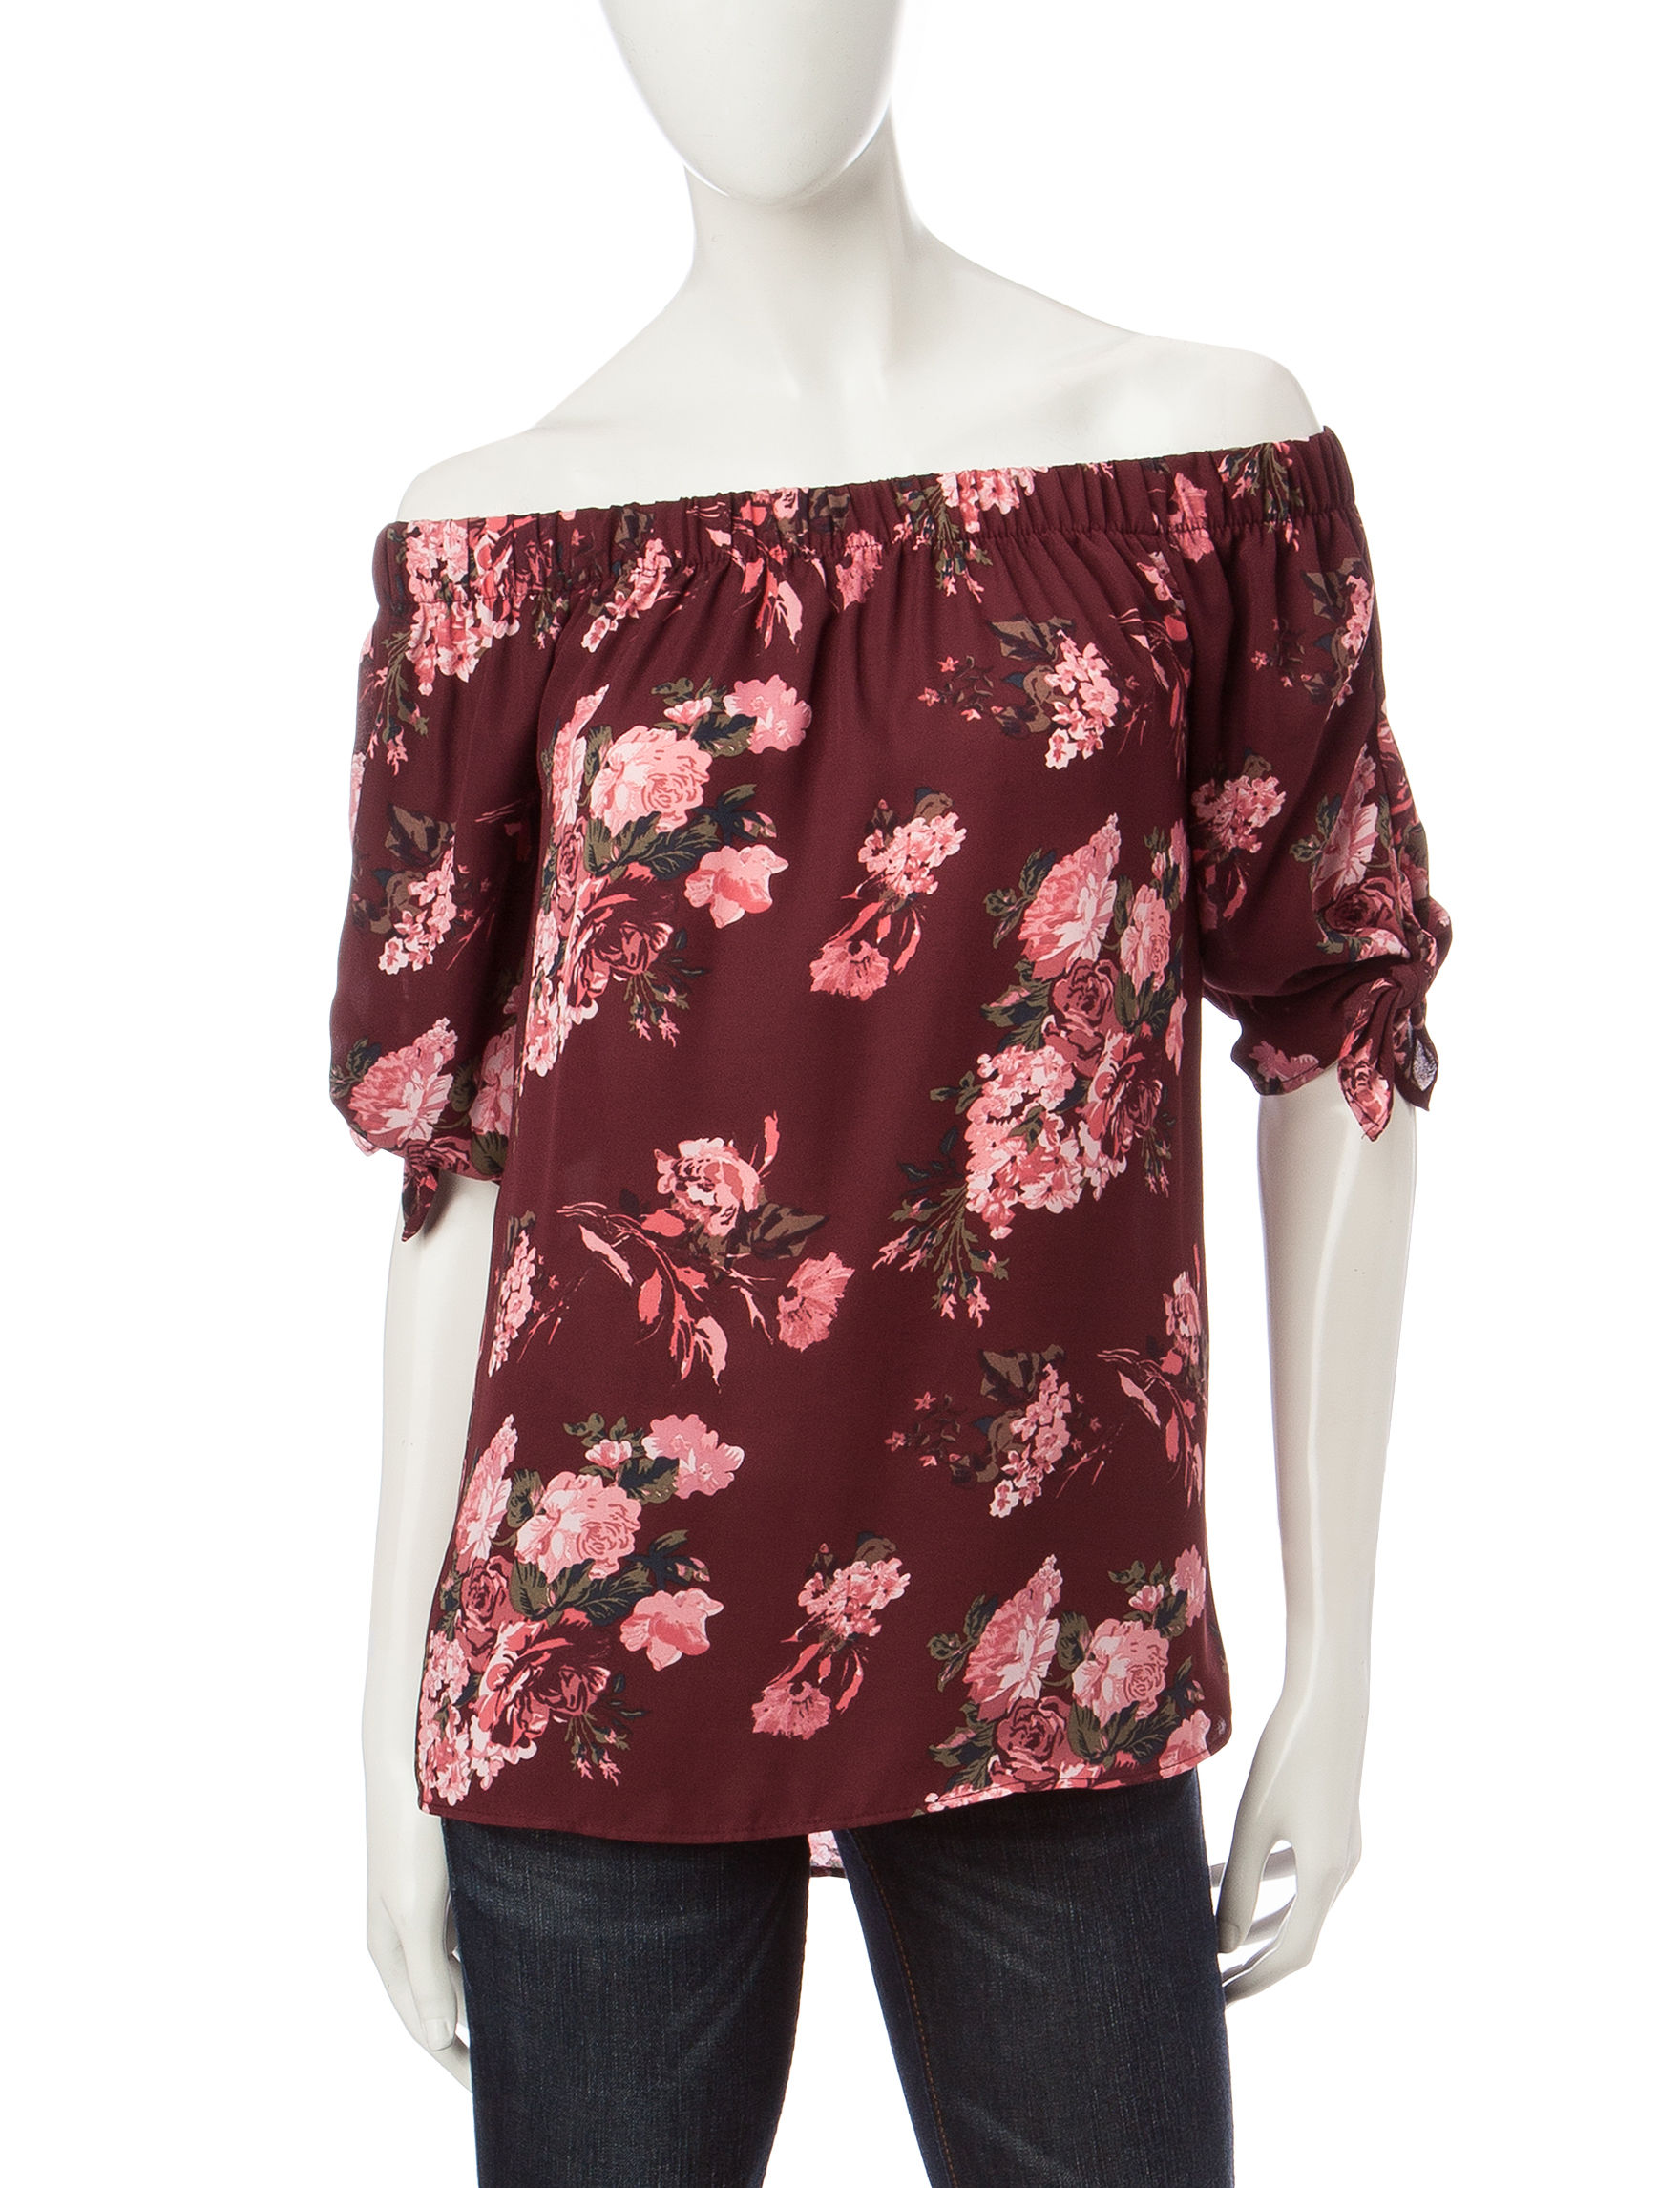 Wishful Park Wine Pull-overs Shirts & Blouses